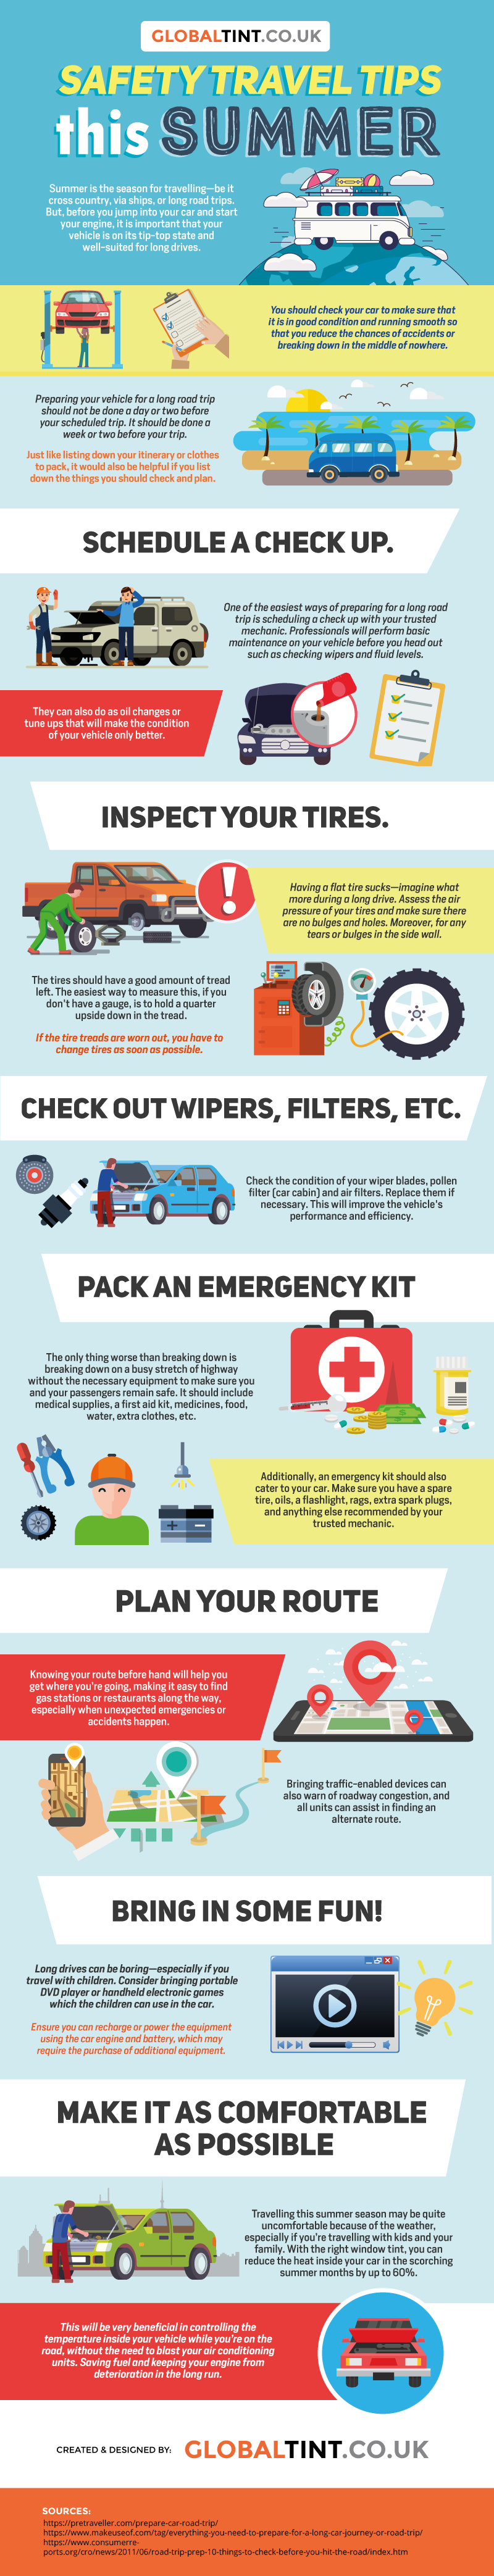 Safety travel tips this Summer